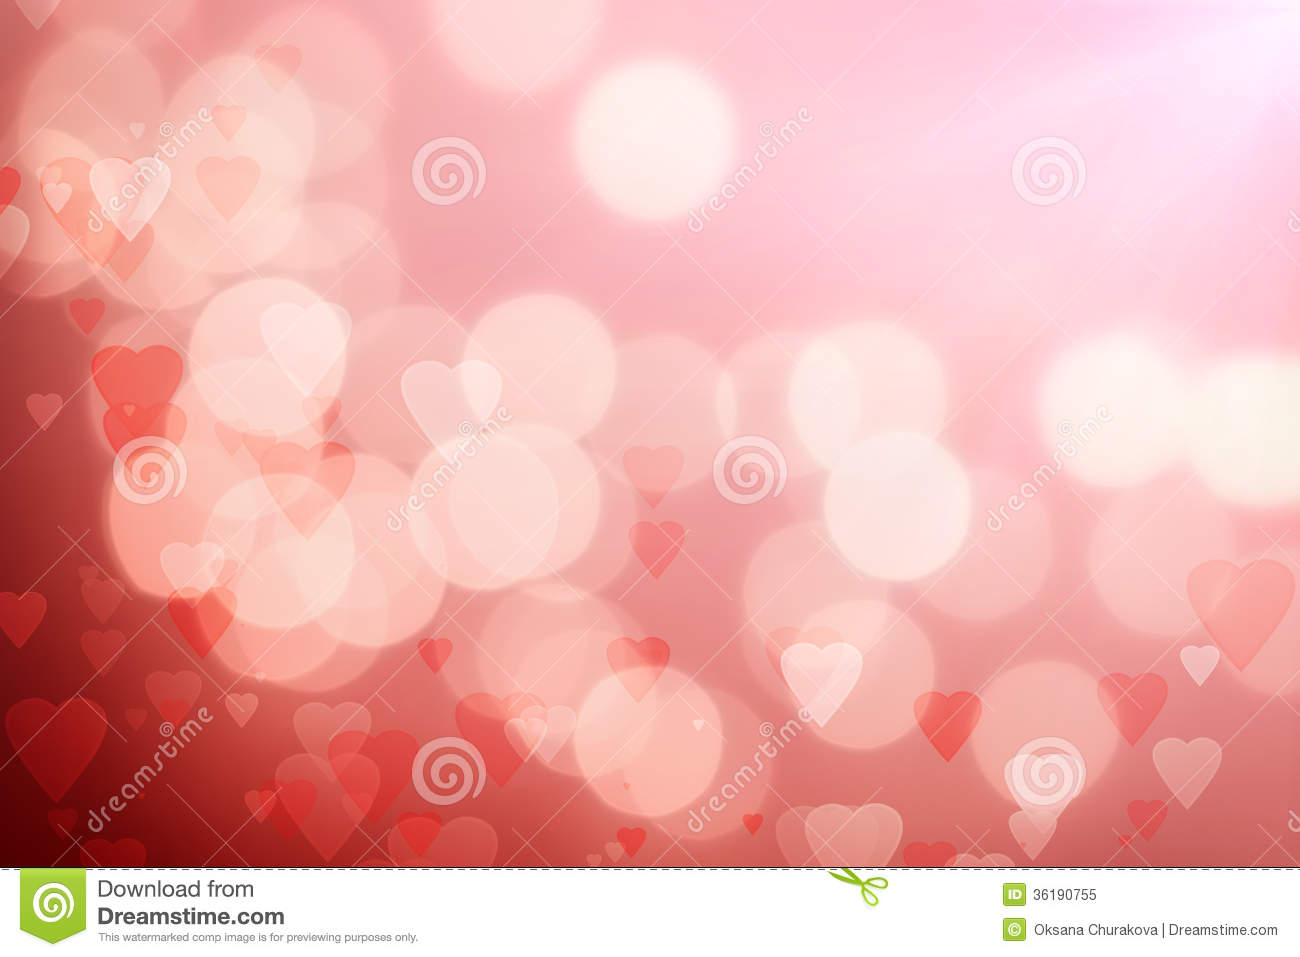 valentines day background clipart - photo #39